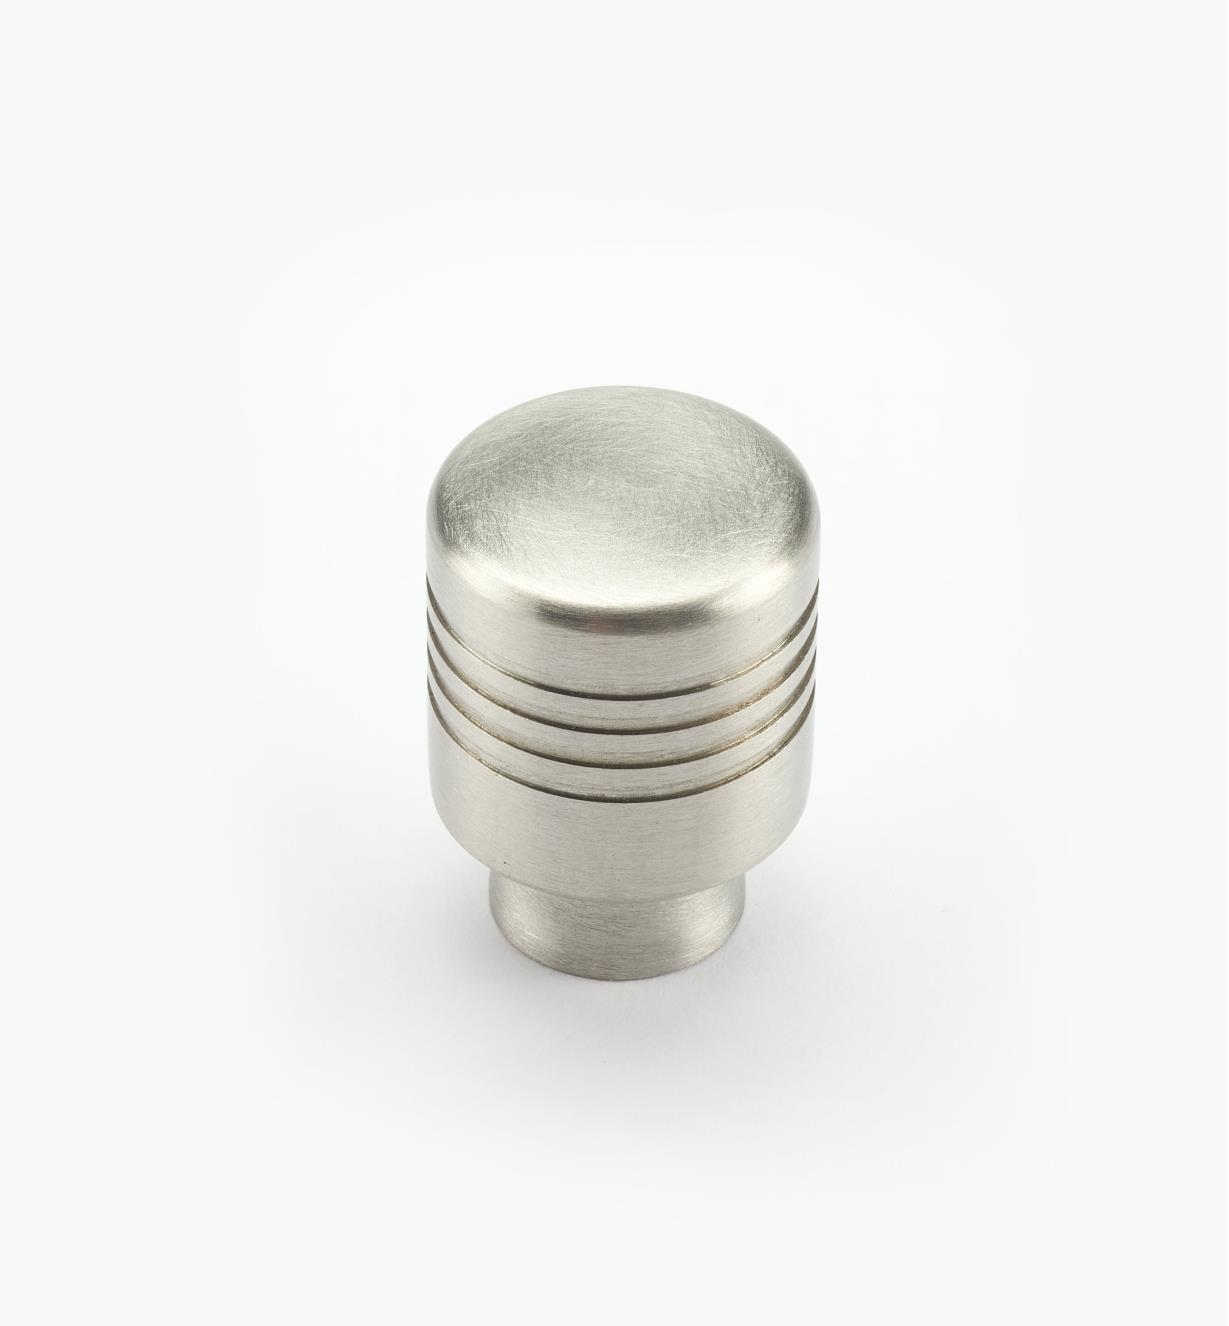 01W6718 - 18mm x 24mm Ribbed Knob